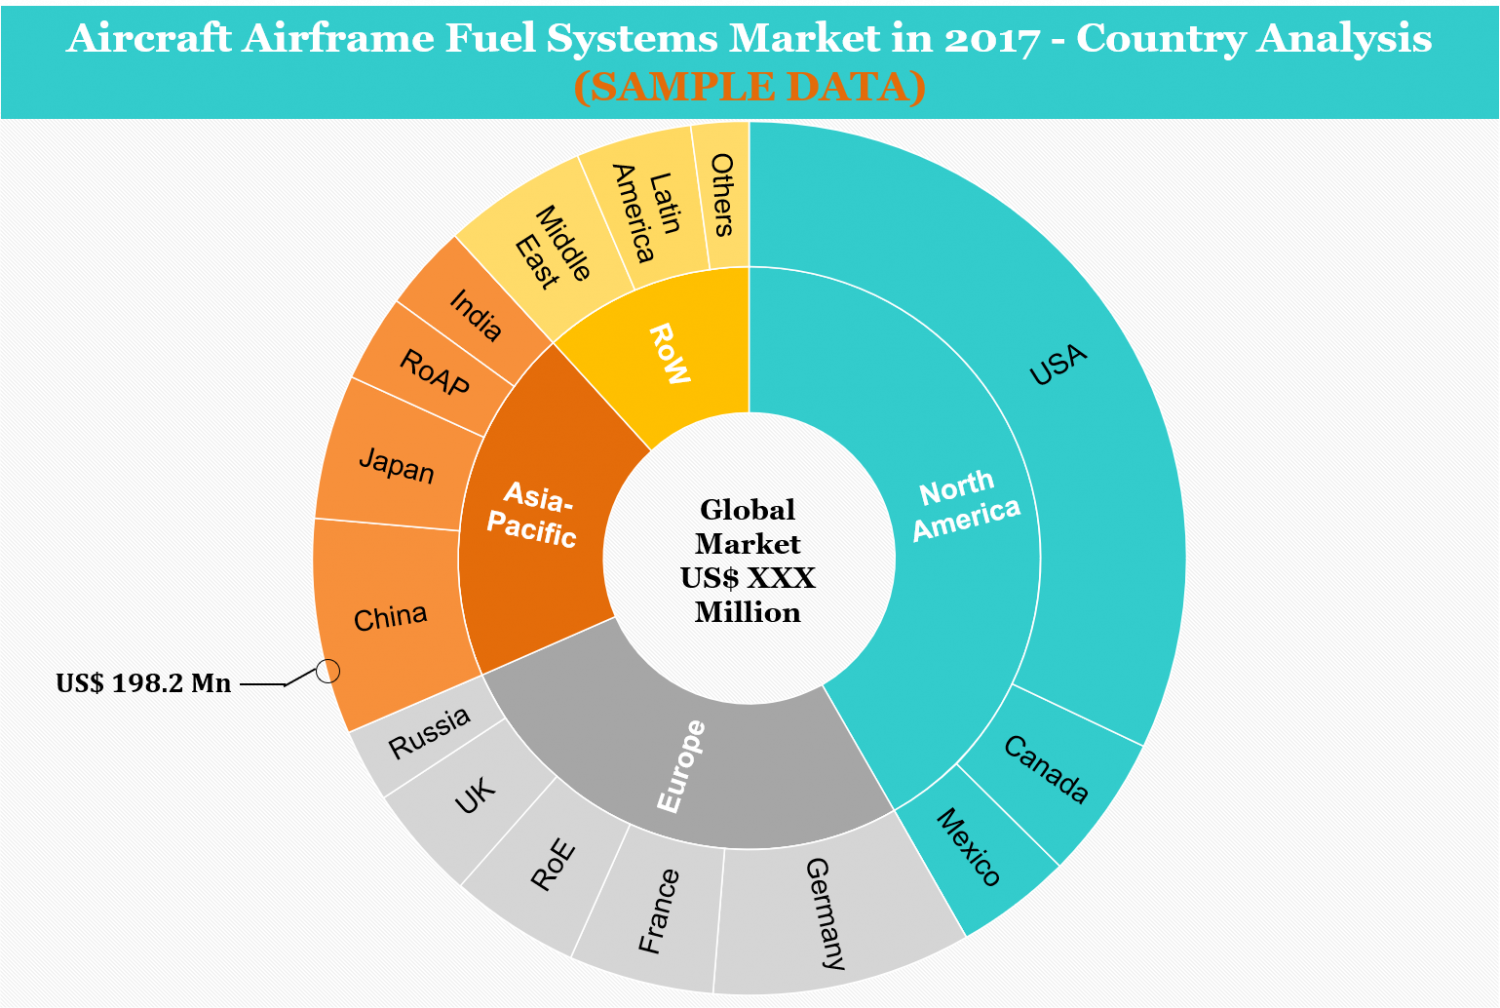 Aircraft Air-frame, fuel-systems market in 2017 (Country analysis) Infographic